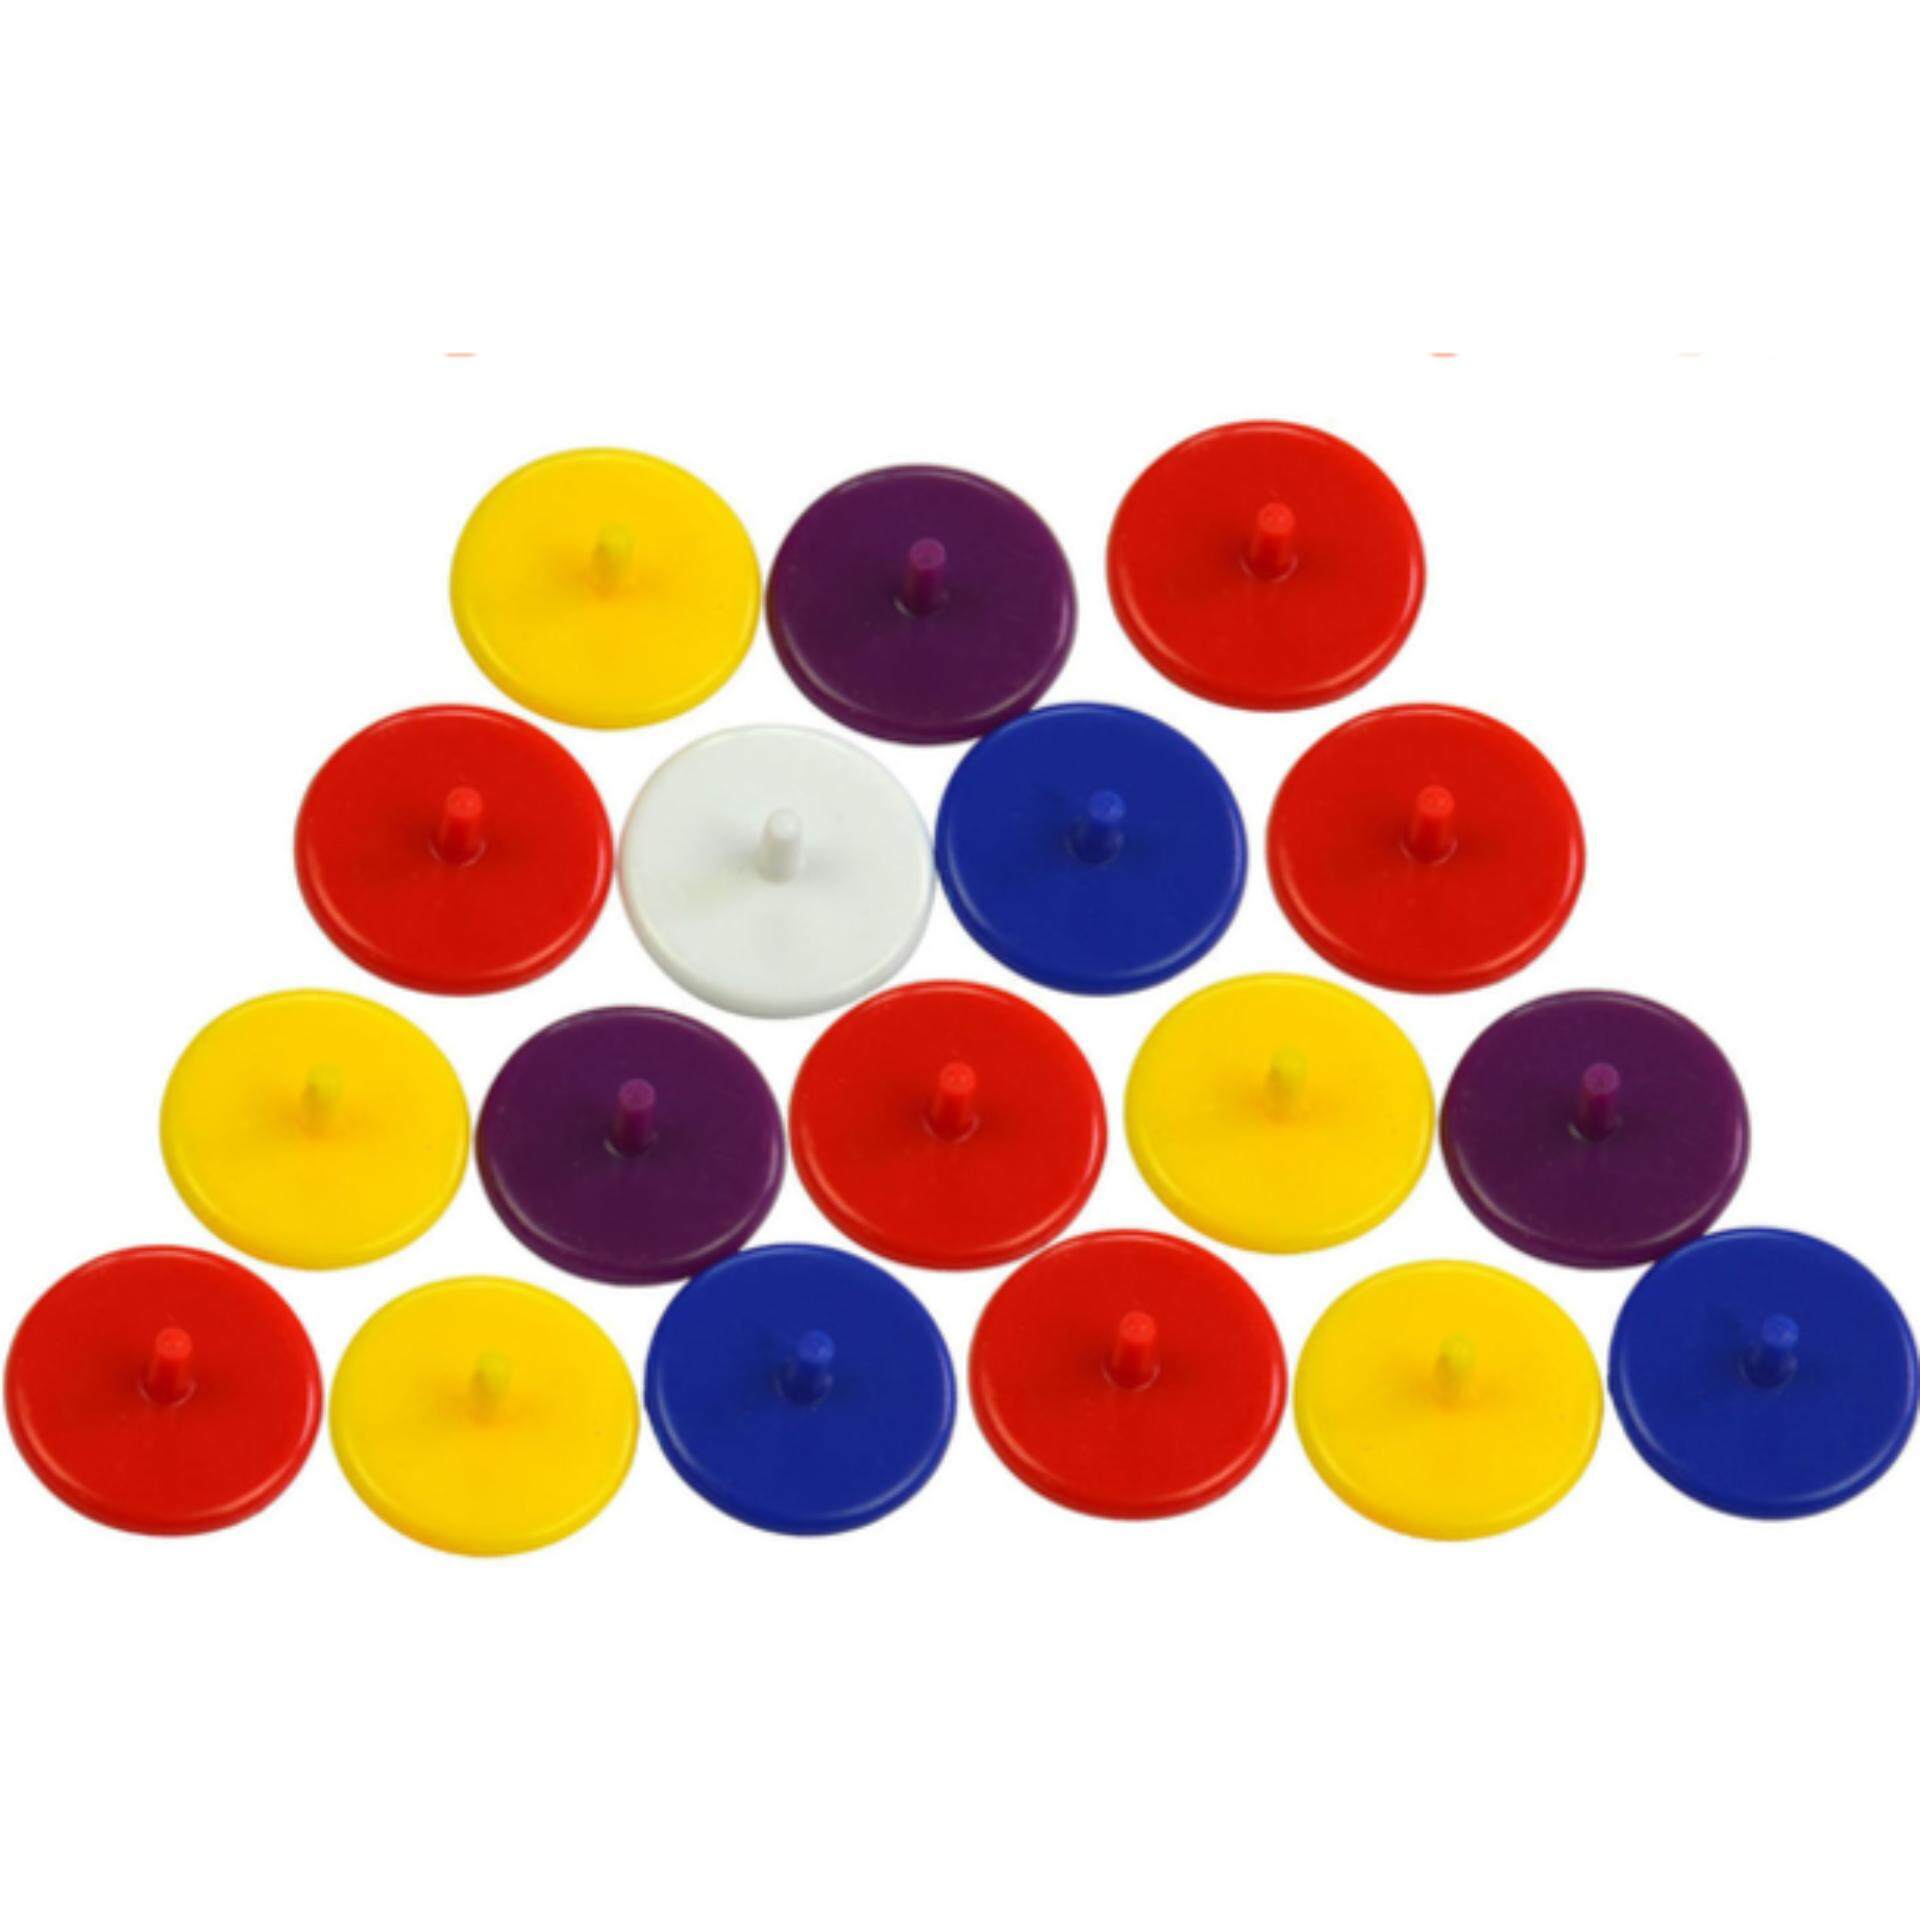 EXCEED 20Pcs size 24mm Plastic Round Golf Ball Markers Golfer Training Aid (Random Colour) MKM0001